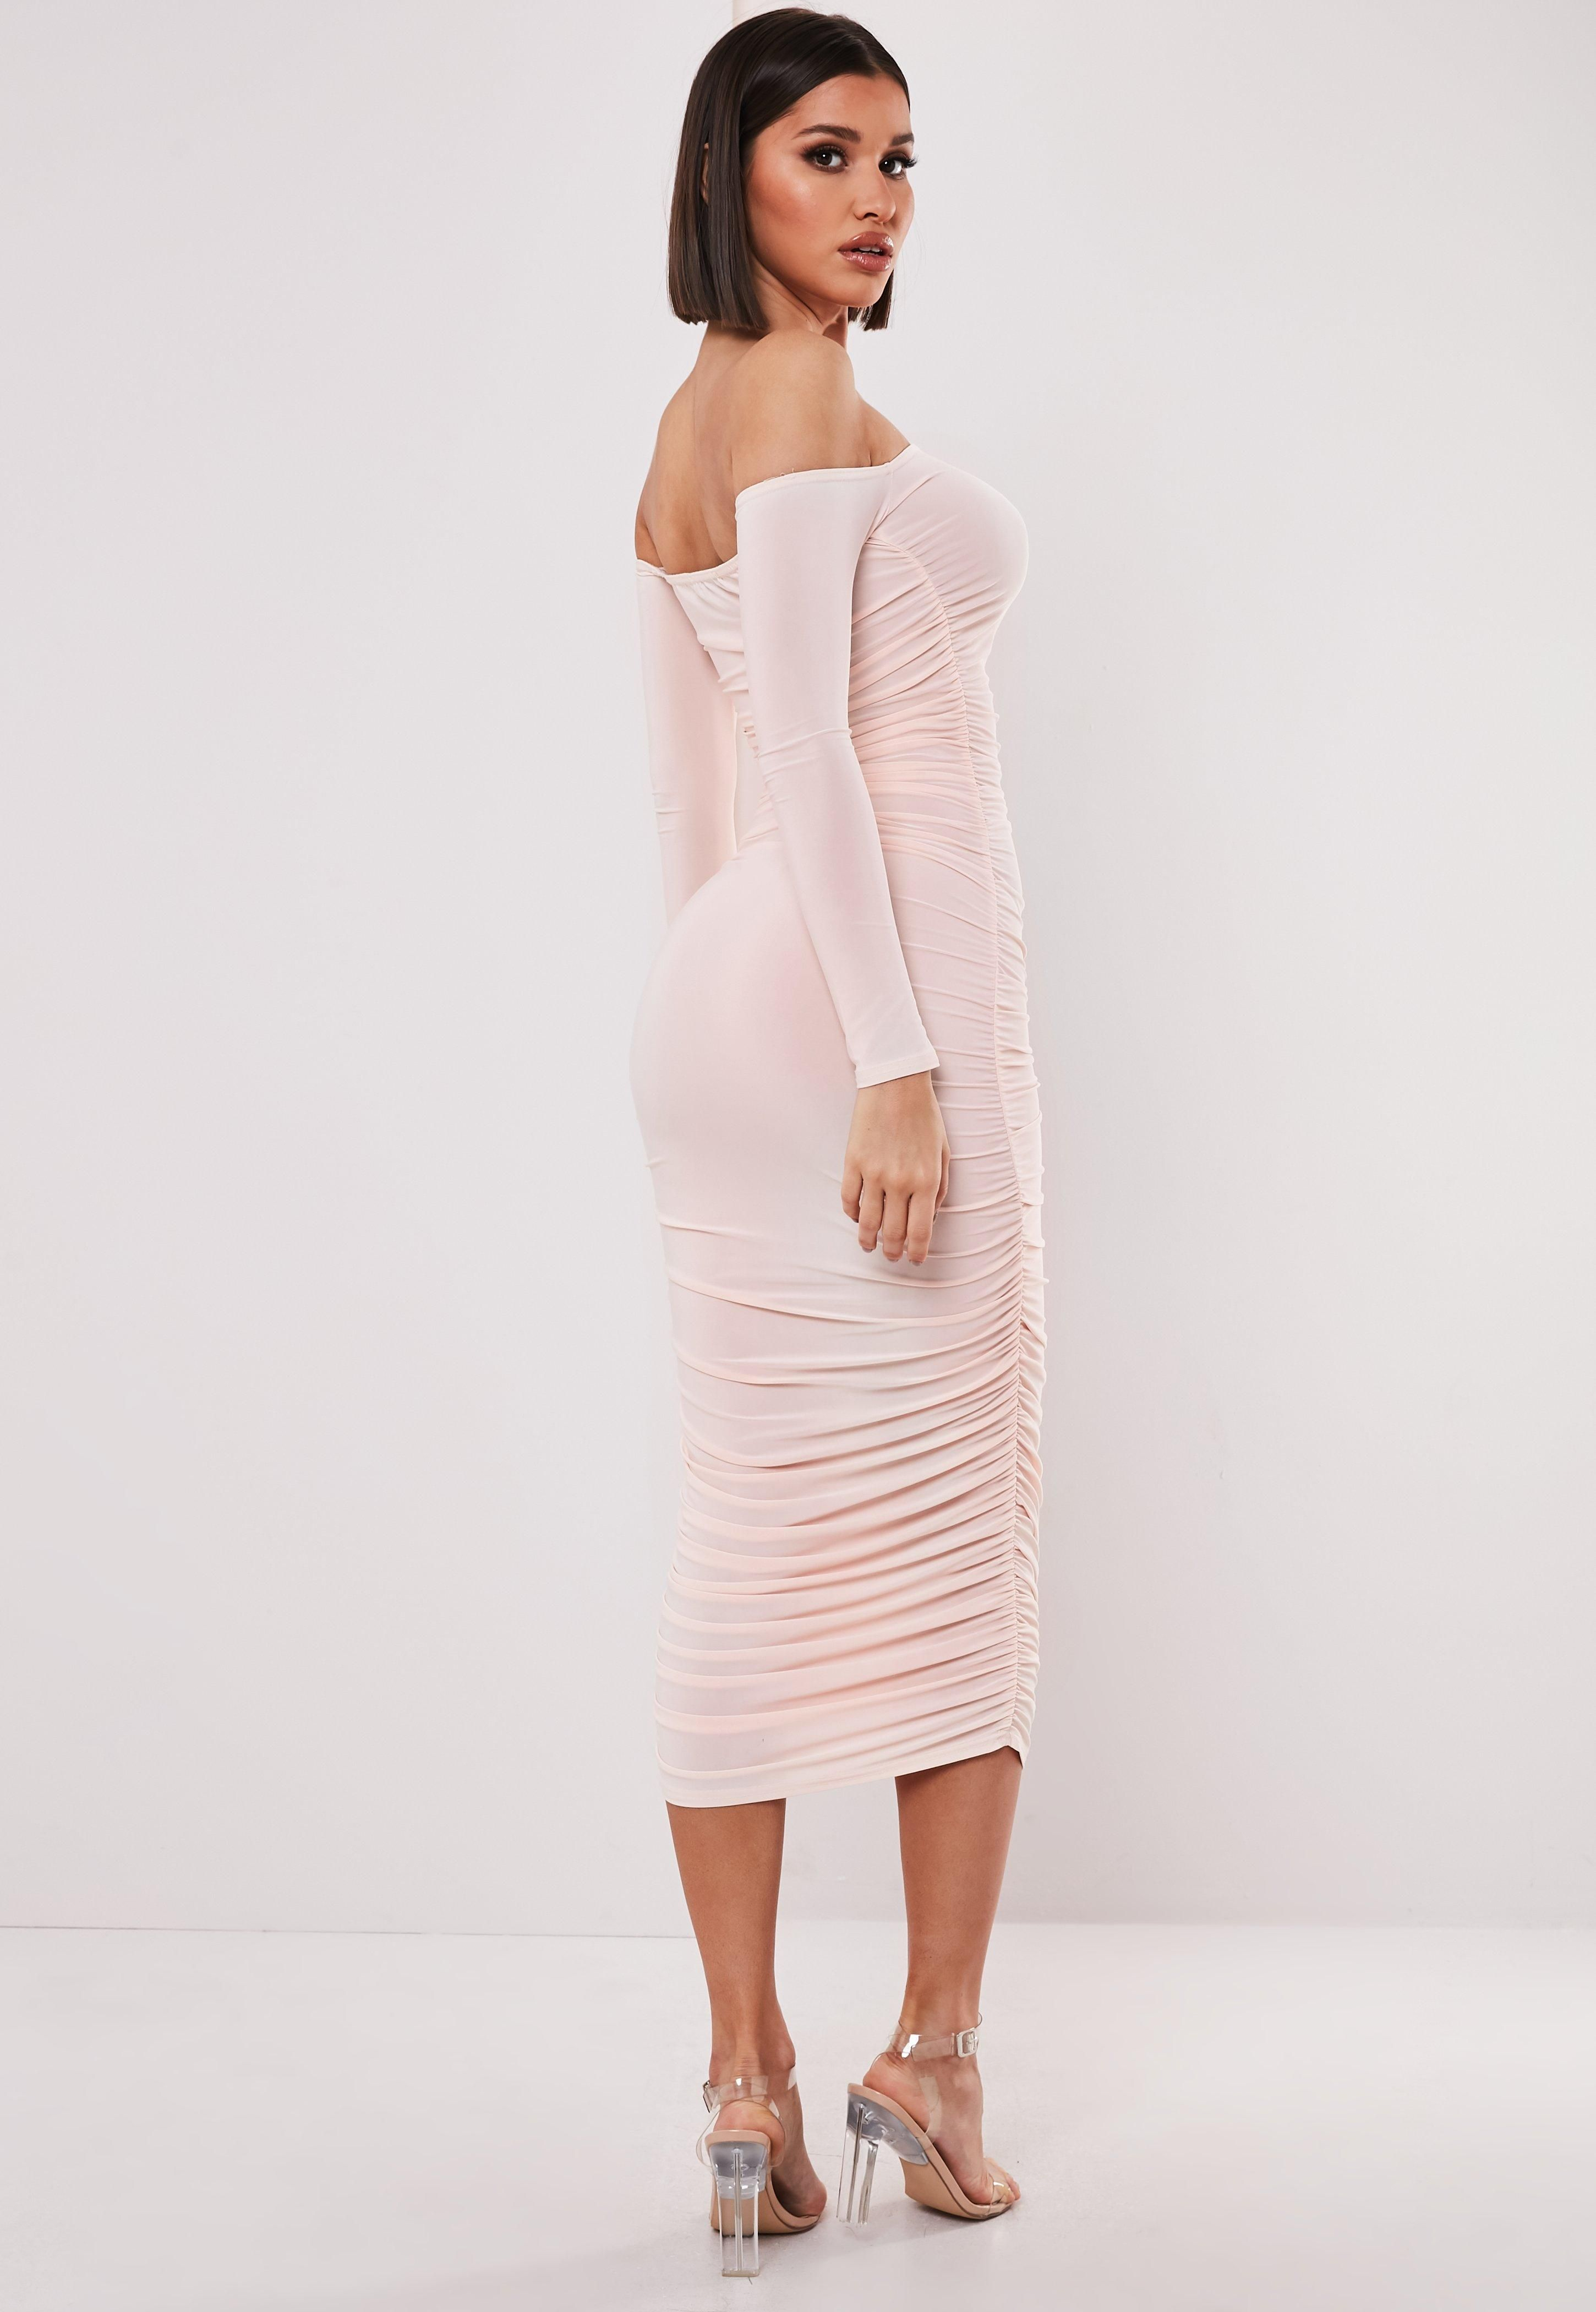 c40435cc112e Pin by Ania Neal on Fashion Must-Haves | Dresses, Nude bodycon ...